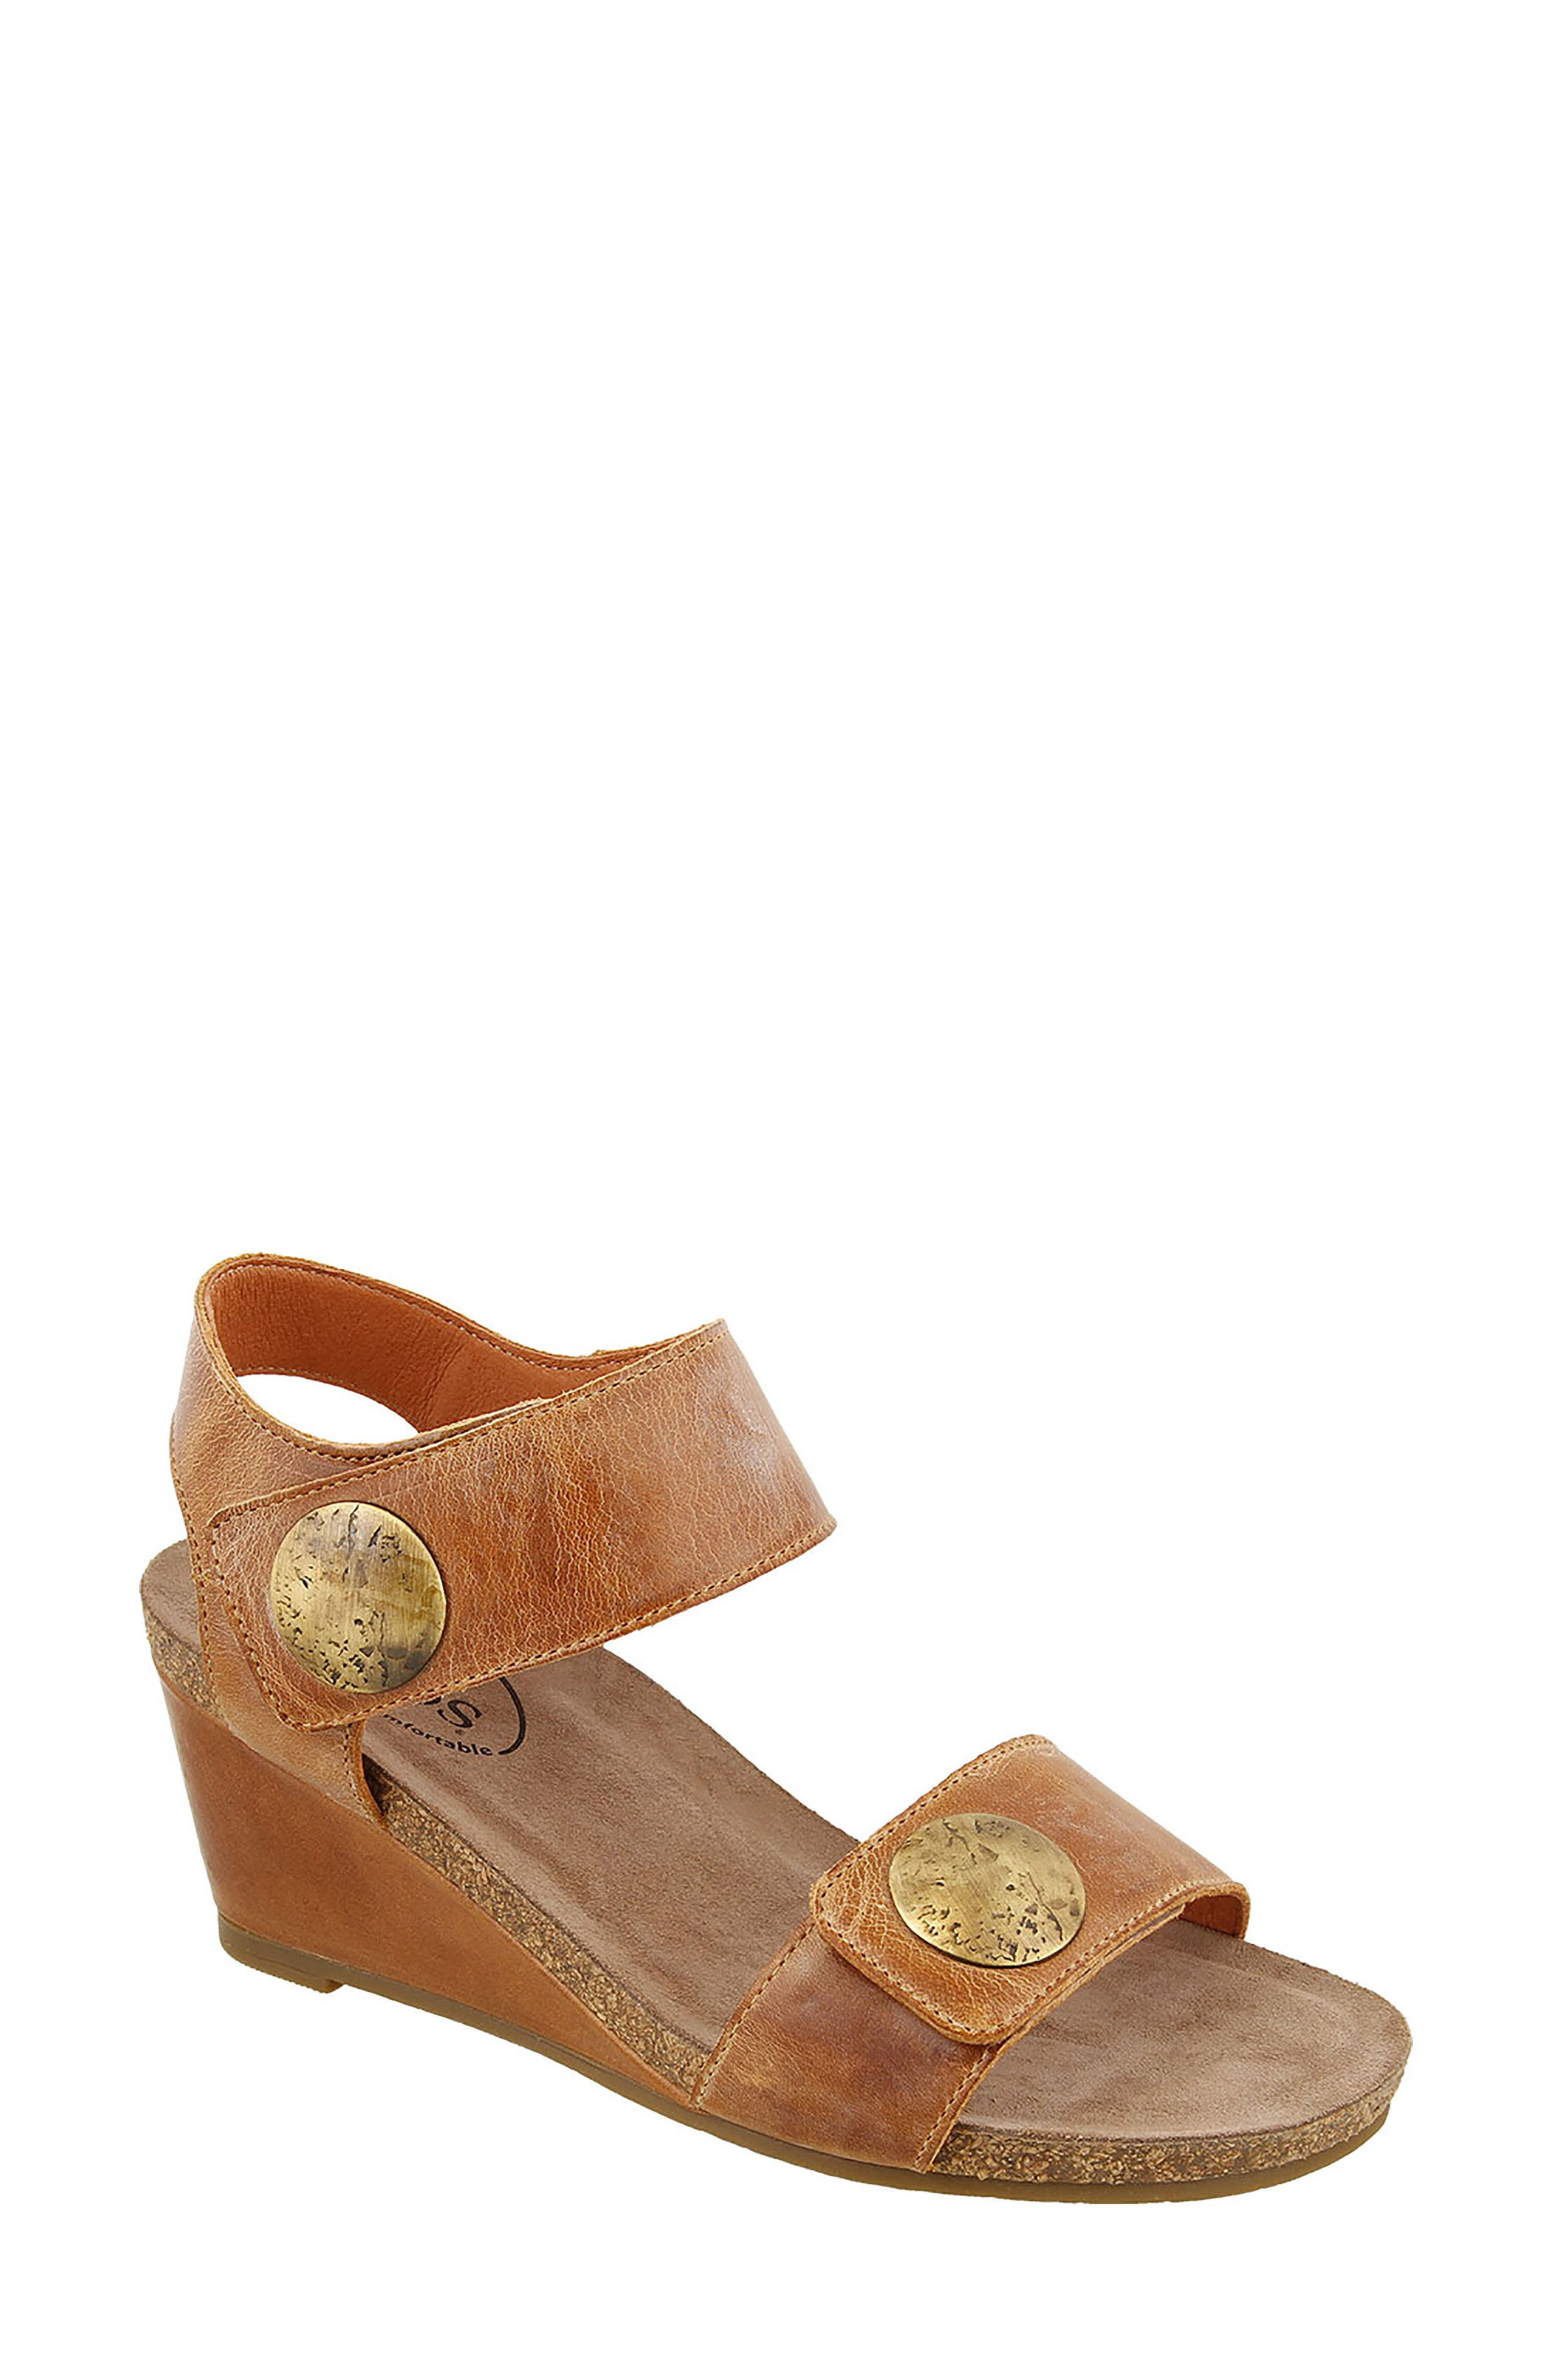 'Carousel 2' Wedge Sandal,                         Main,                         color, Camel Suede